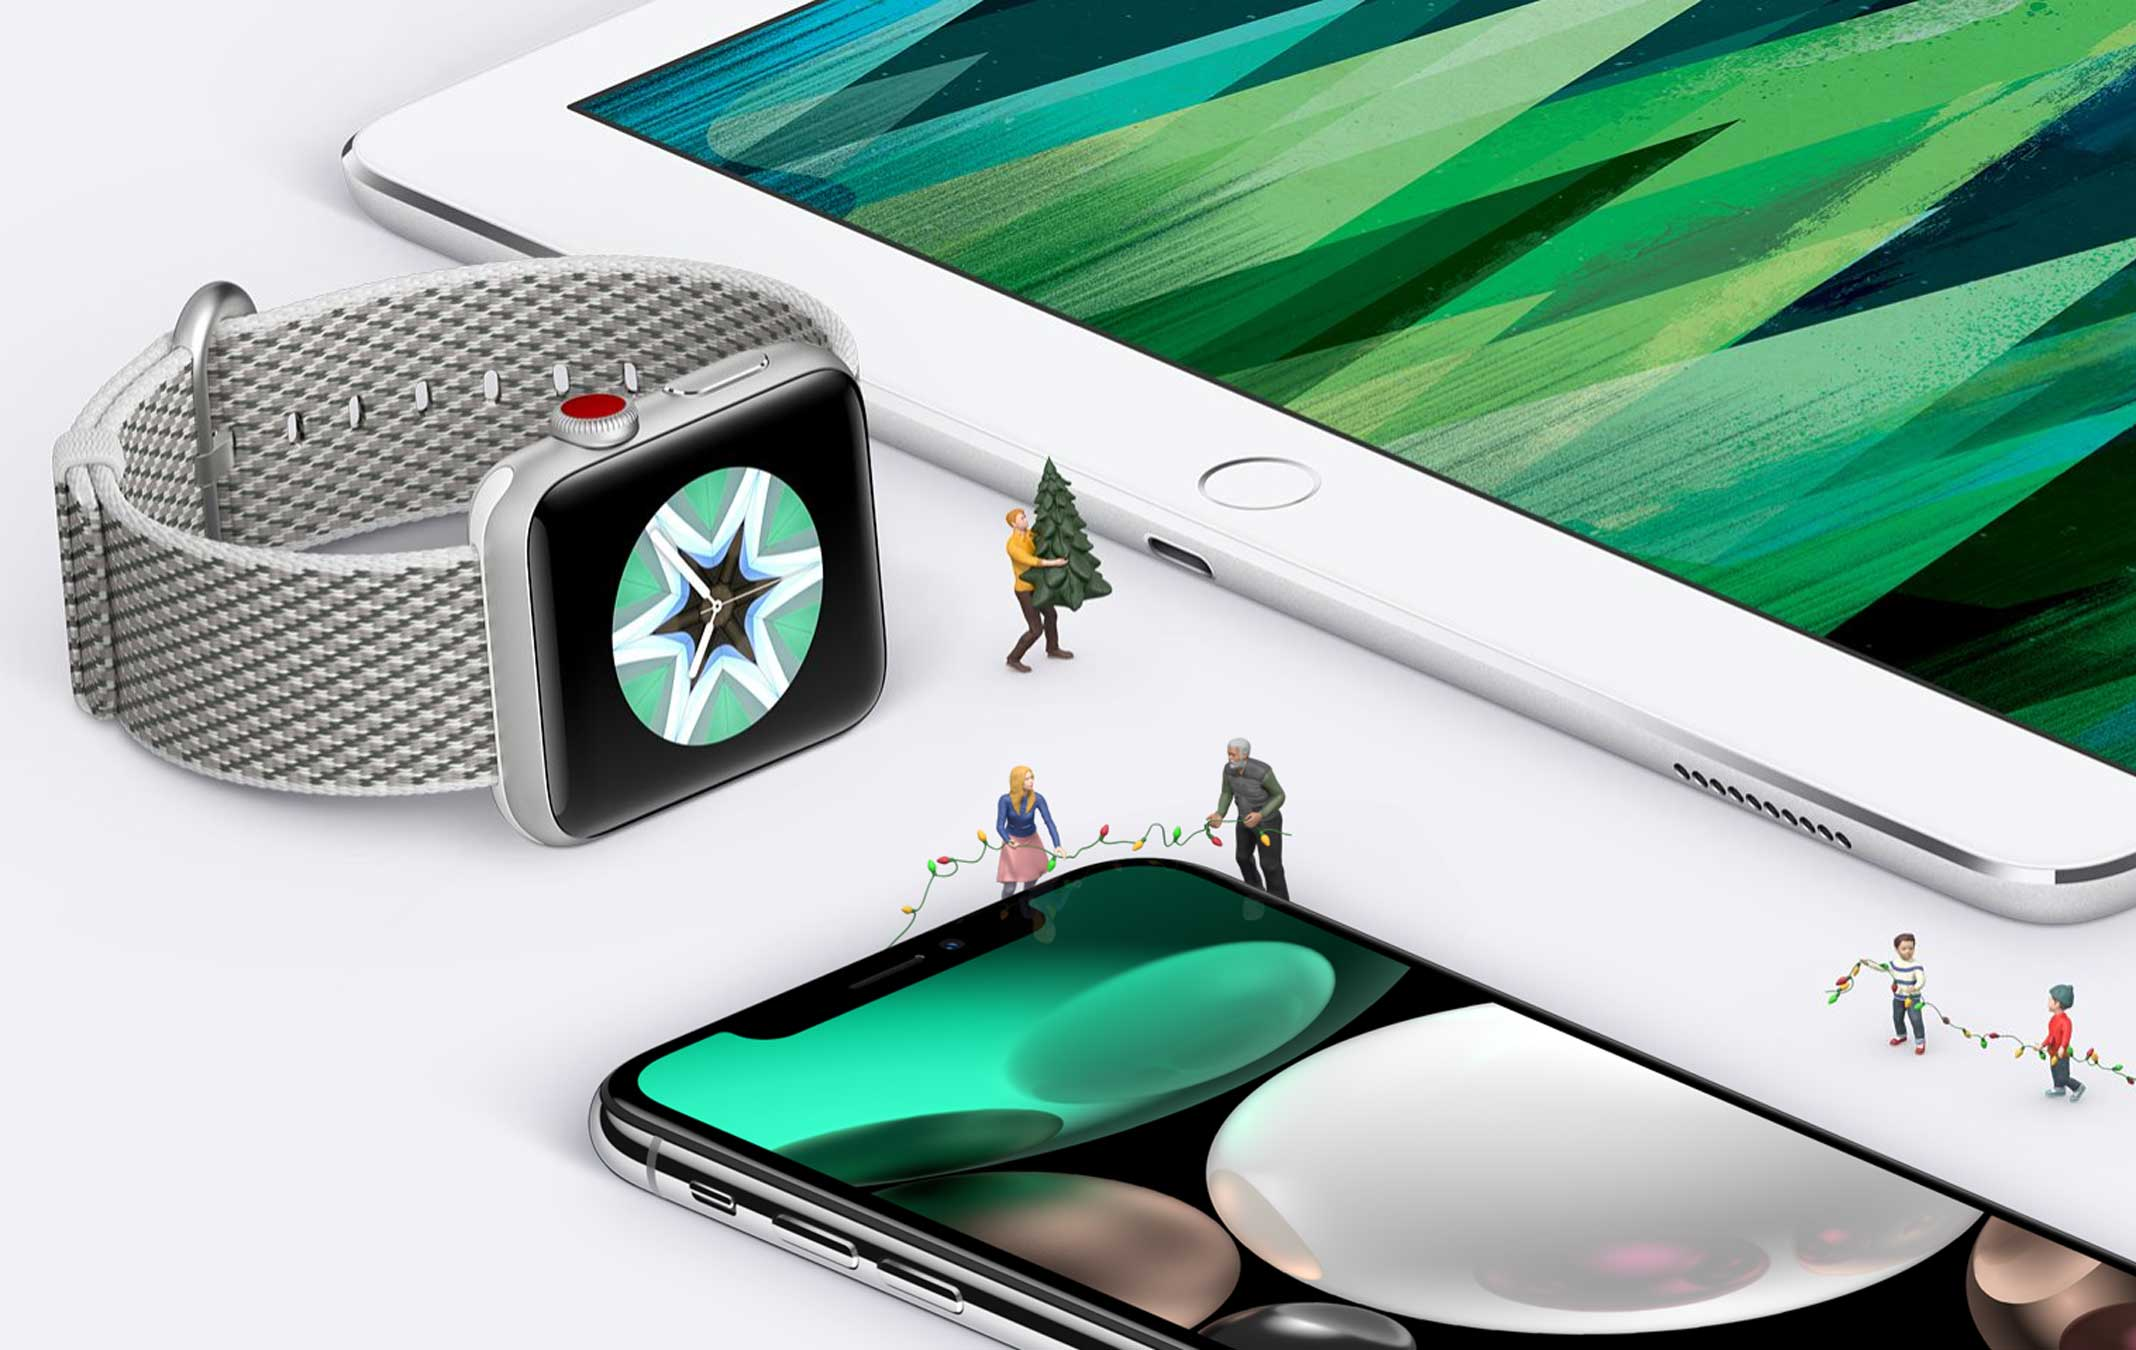 Apple Christmas-Gifts iPad Pro Apple Watch iPhone X - Mac Prices New ...